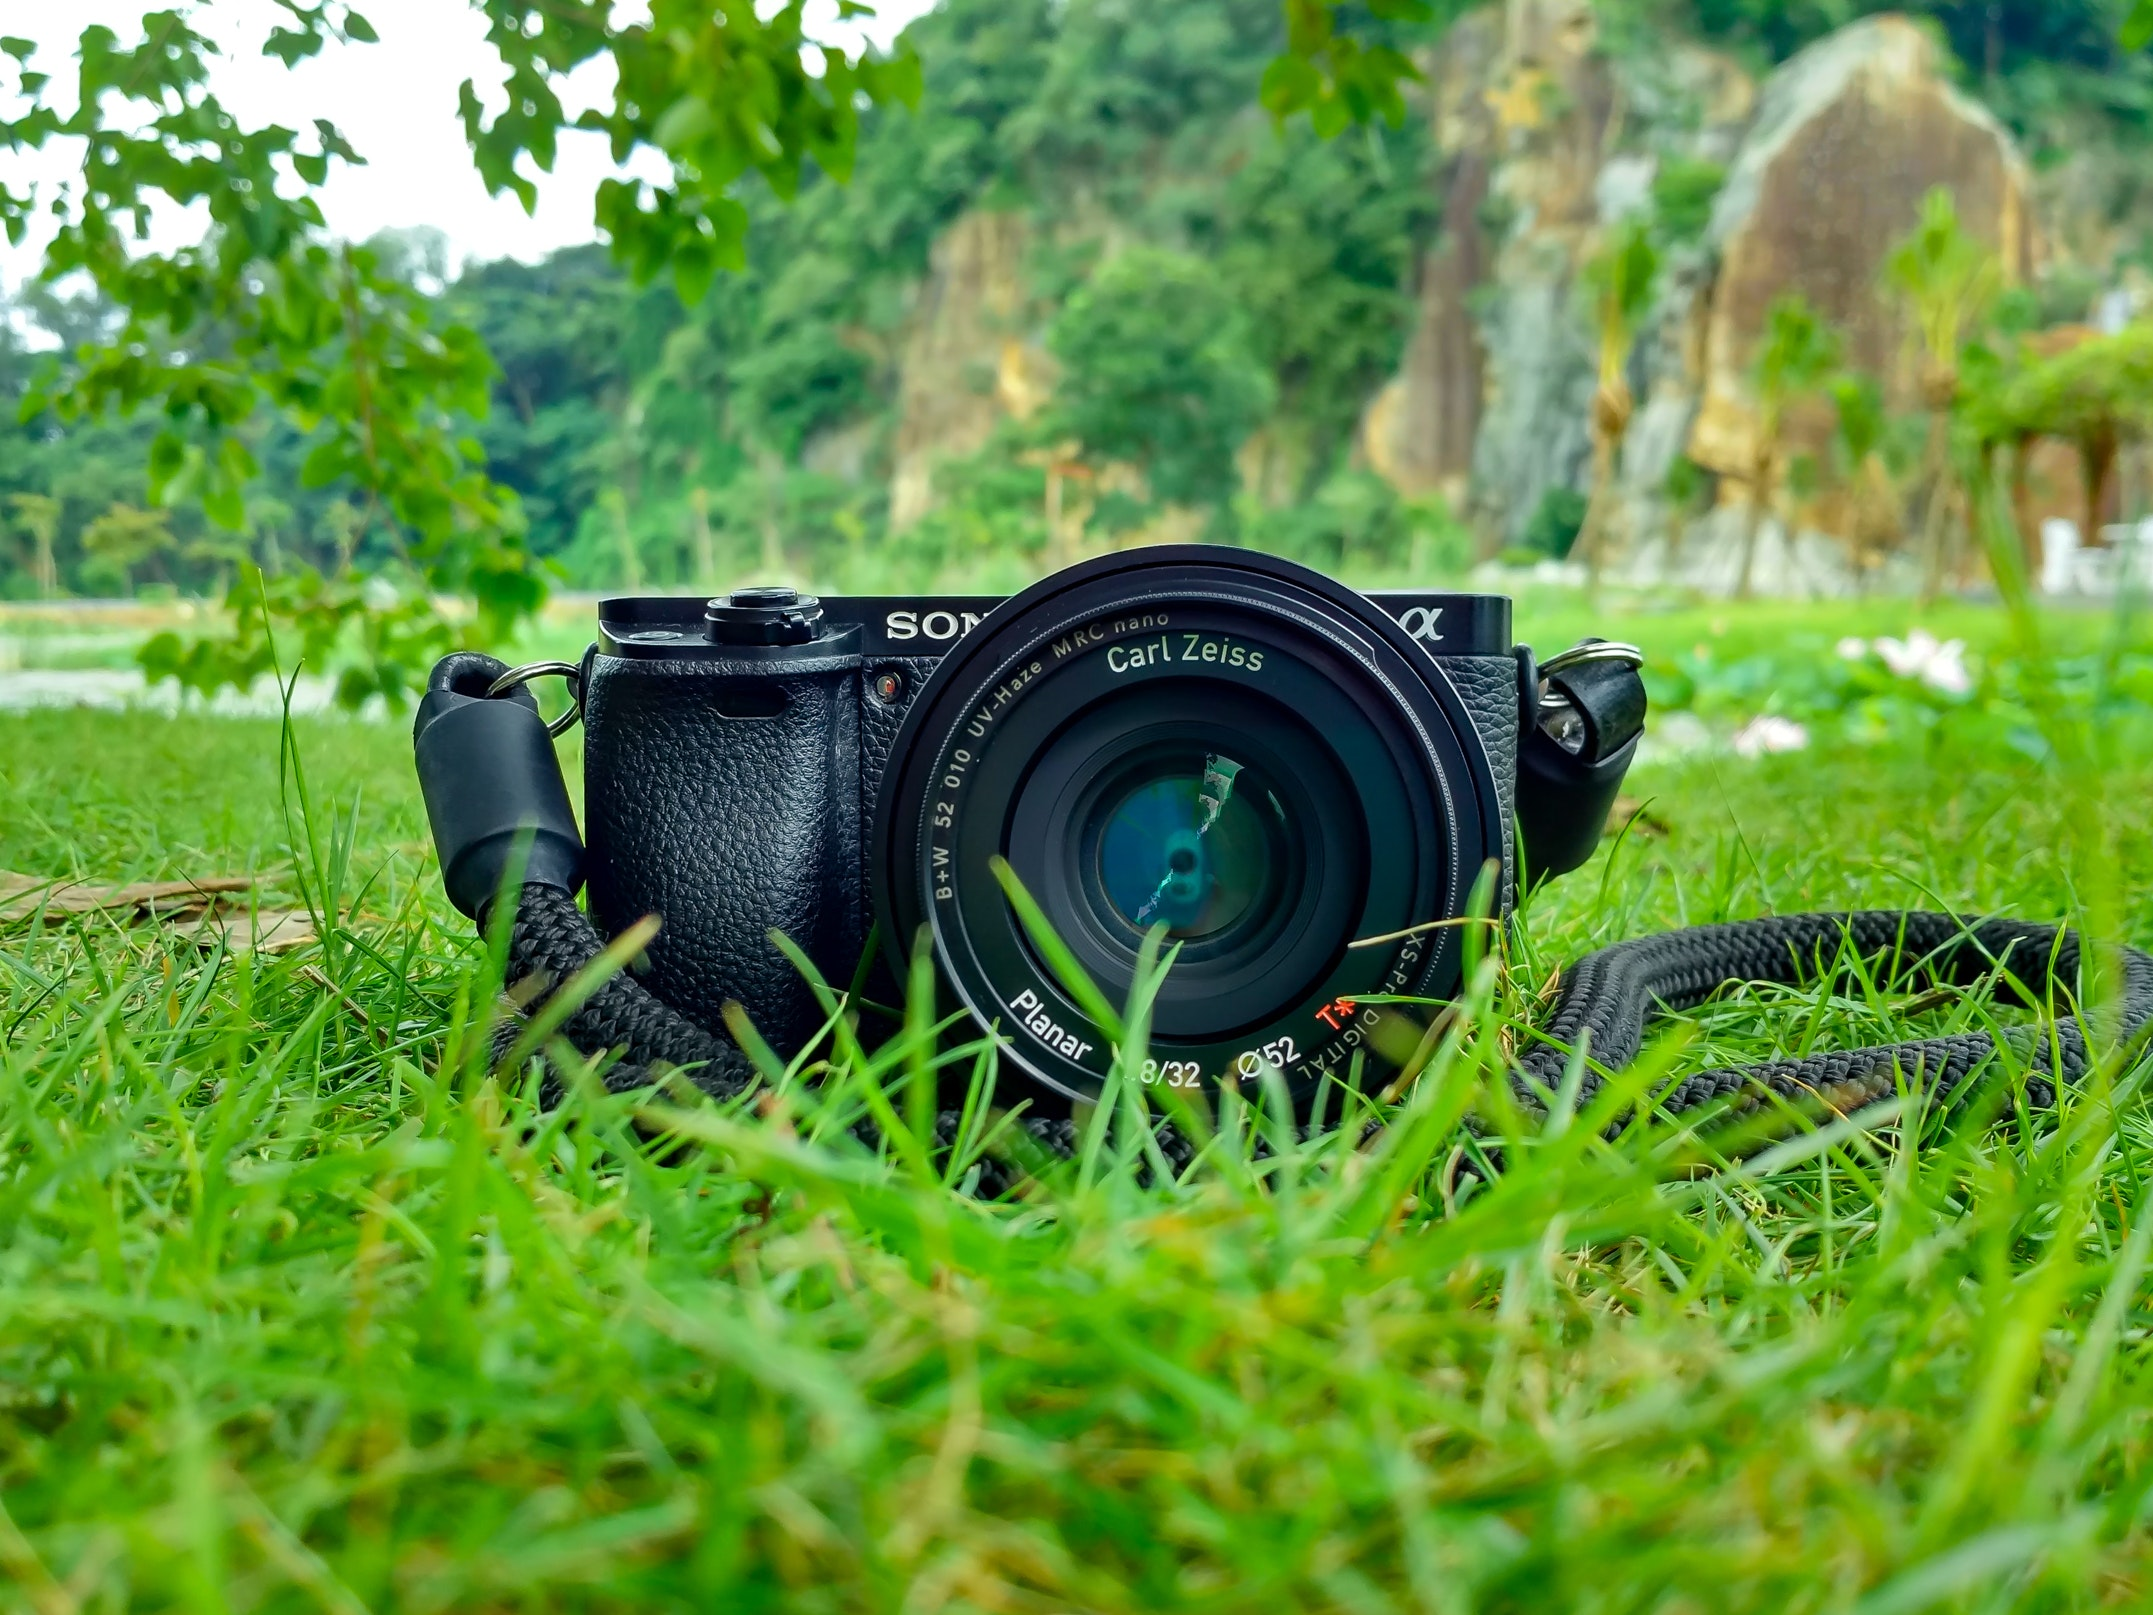 Black Sony Dslr Camera On Green Grass In Front Of Brown And Green